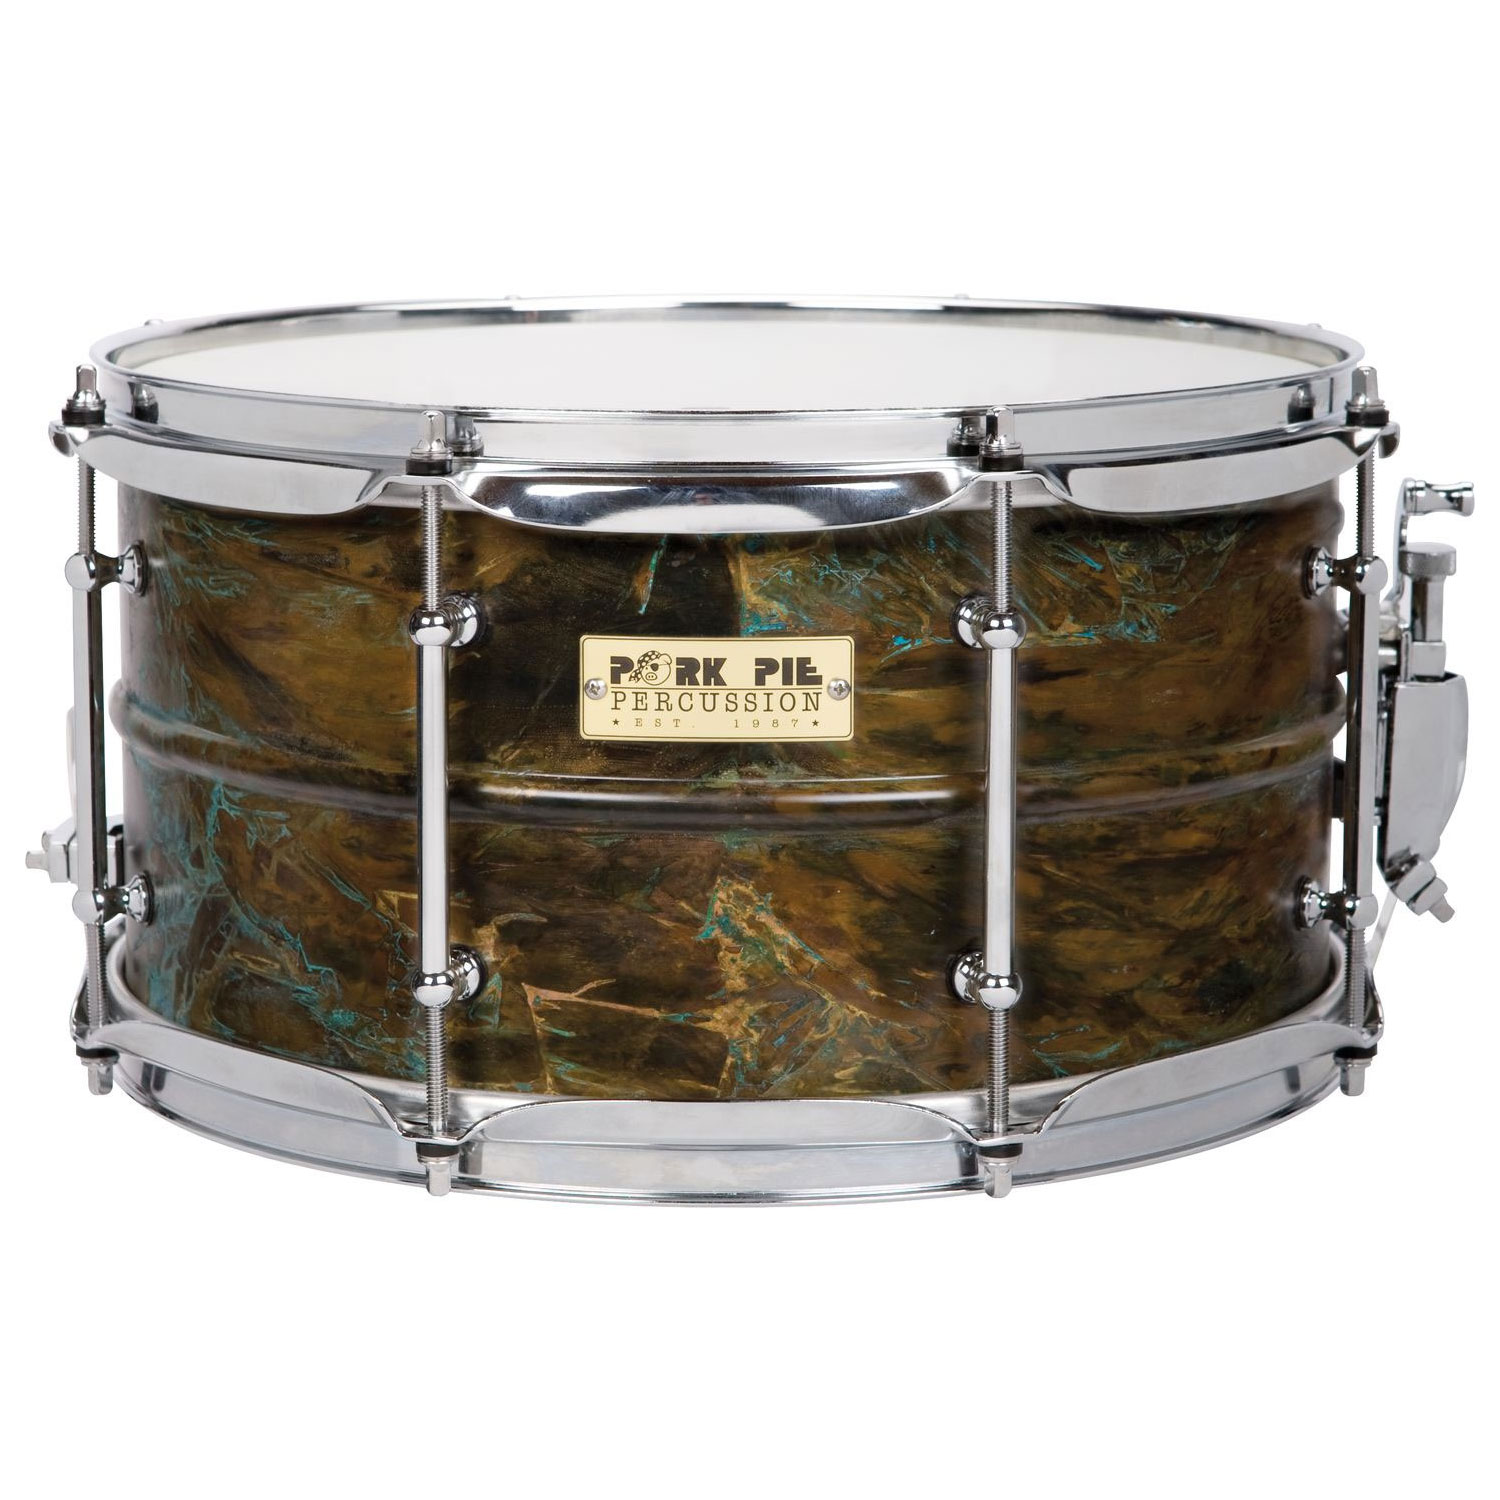 "Pork Pie 7"" x 13"" Patina Brass Snare Drum"